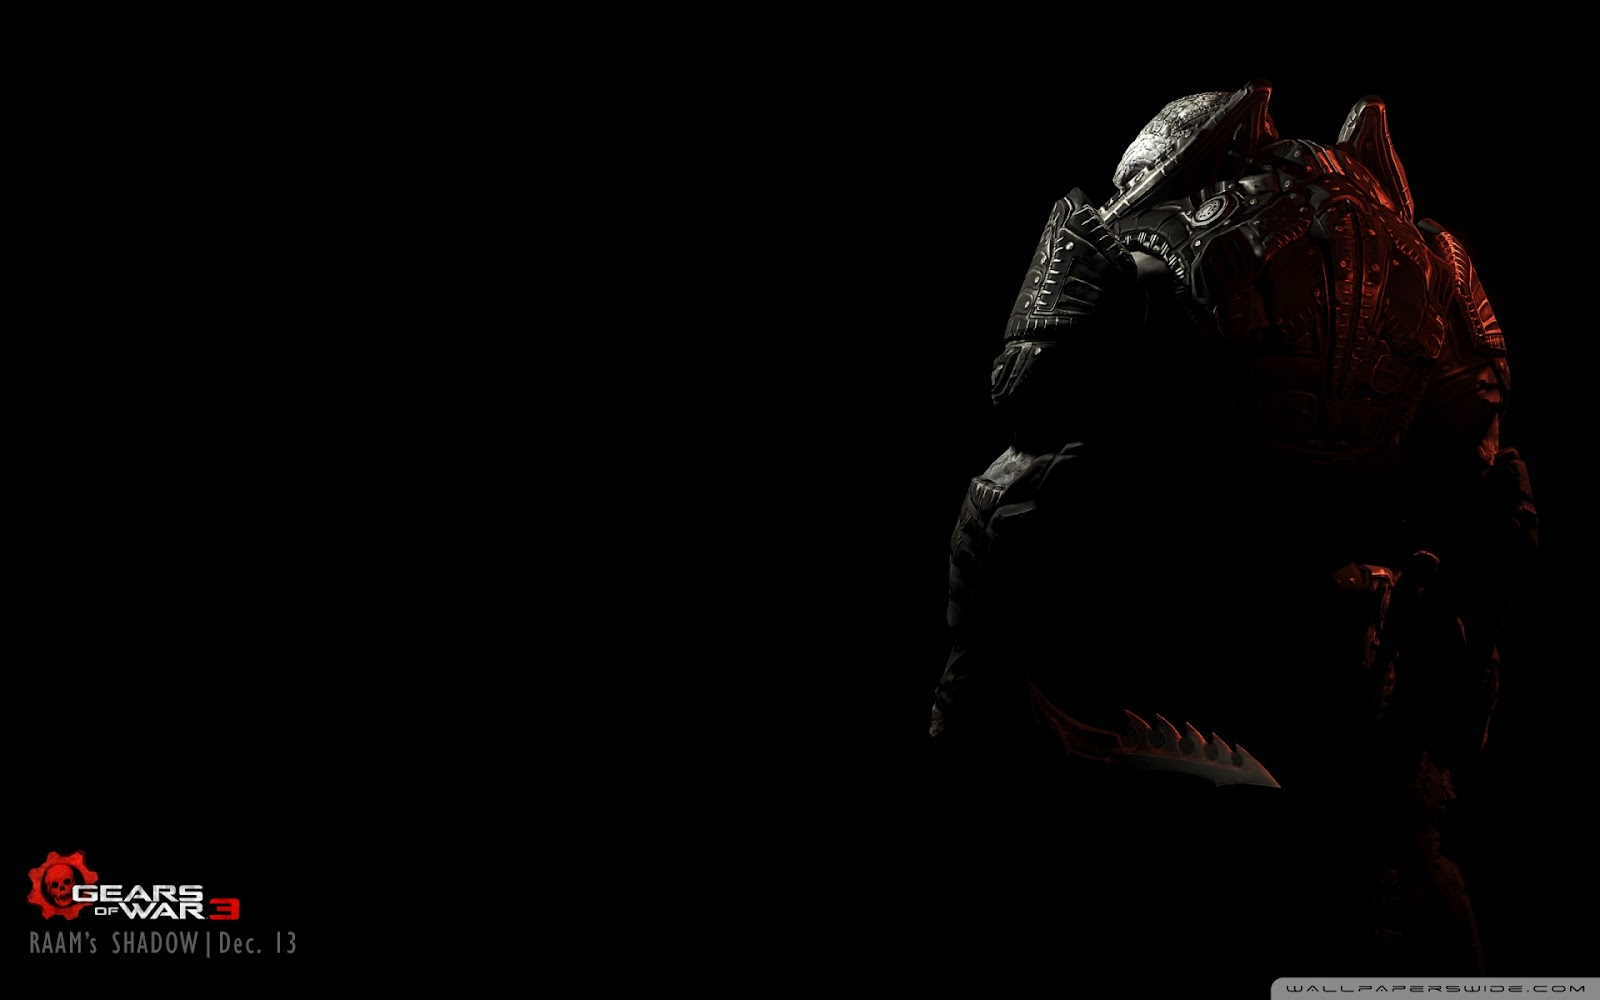 Gears of War HD & Widescreen Wallpaper 0.827323531075697